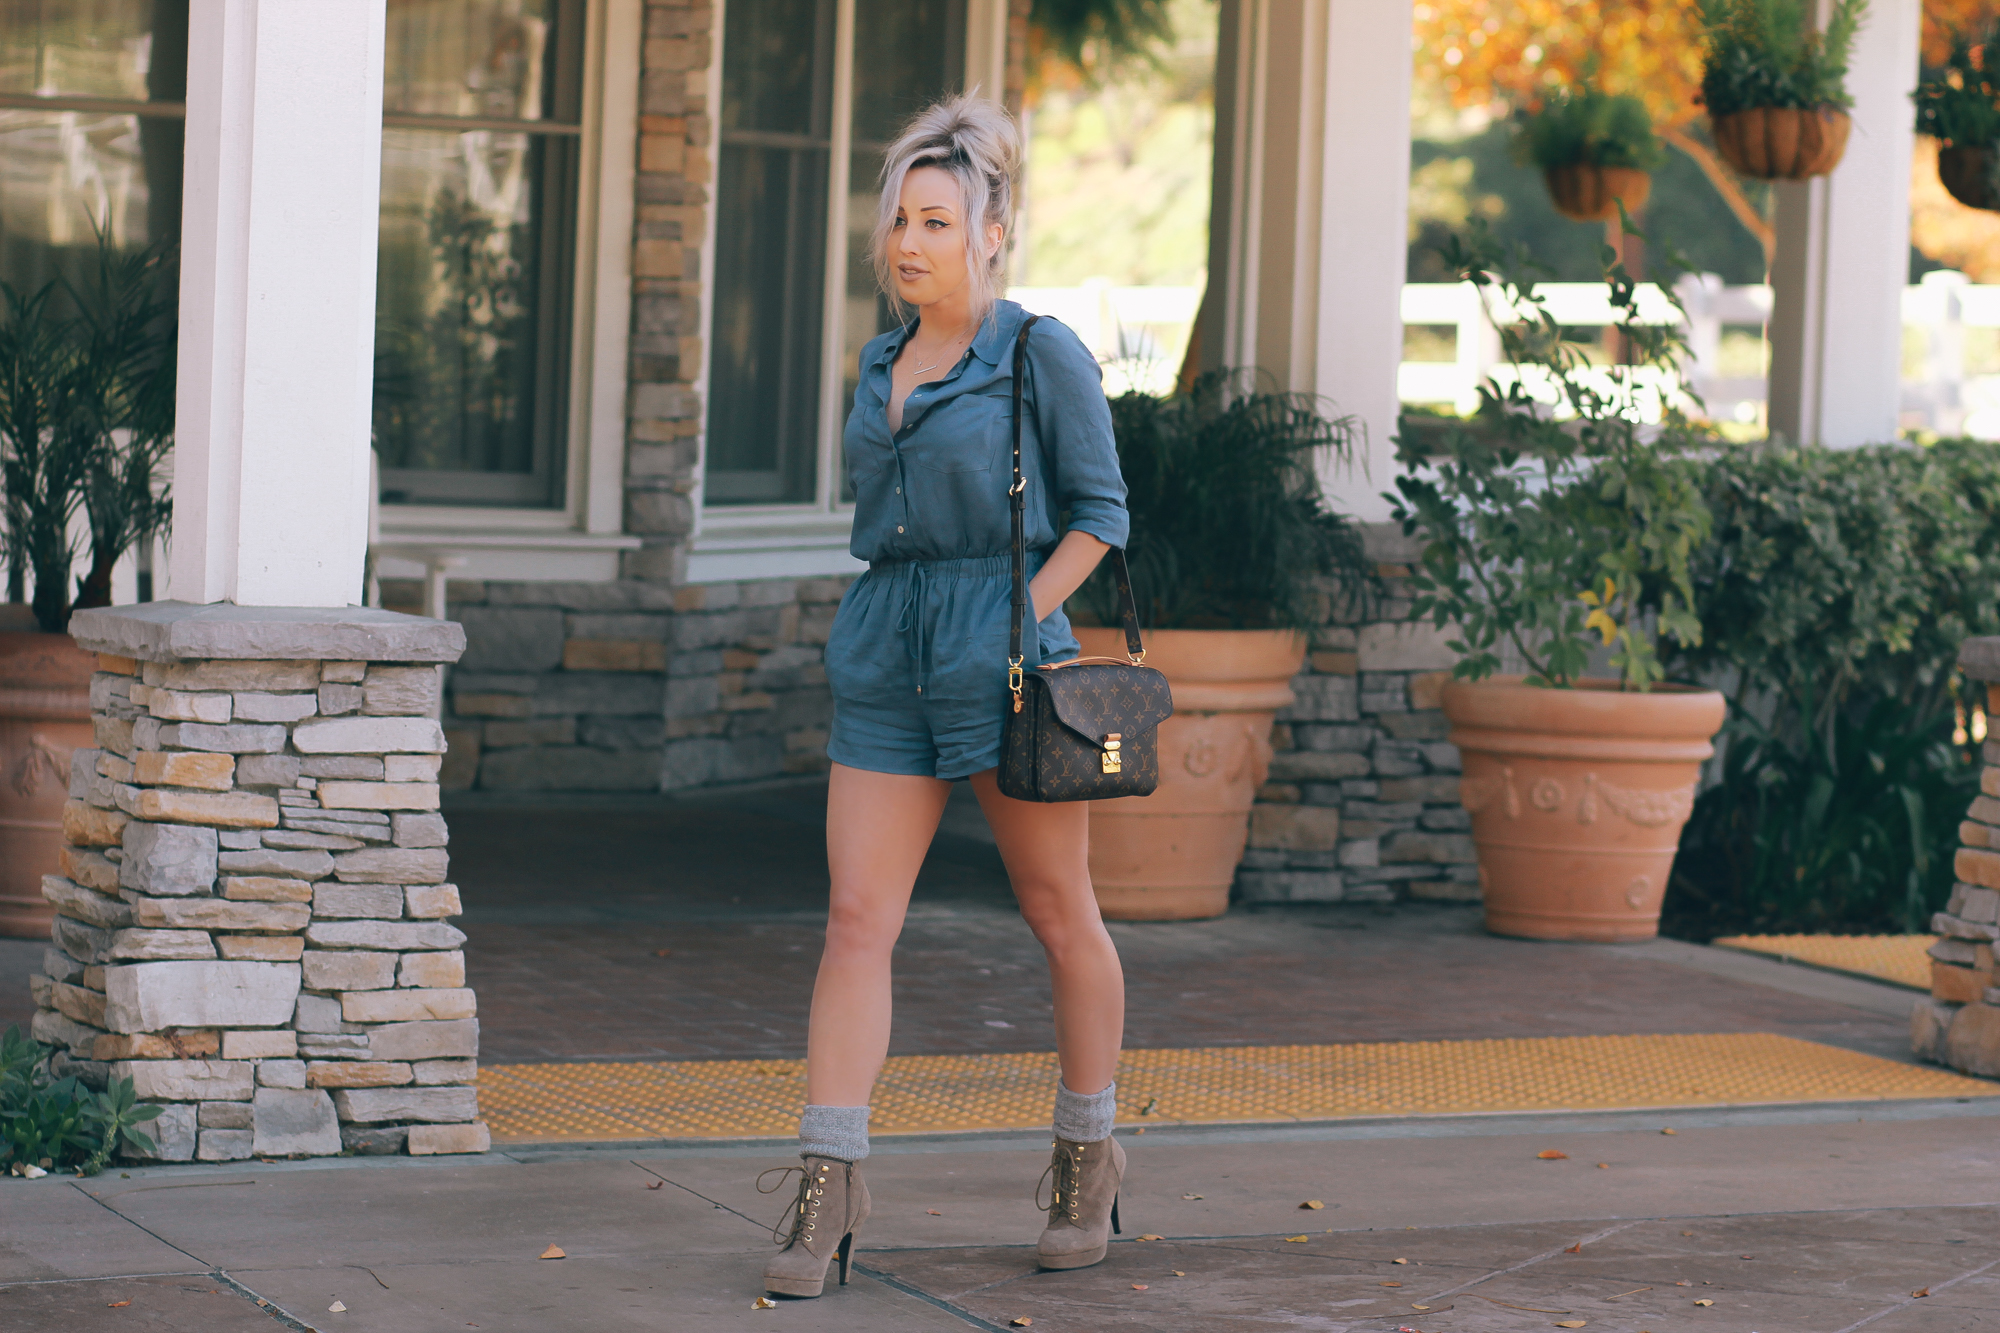 Blondie in the City | Blue Button Up Romper and Socks with Booties | Louis Vuitton Pochette Metis